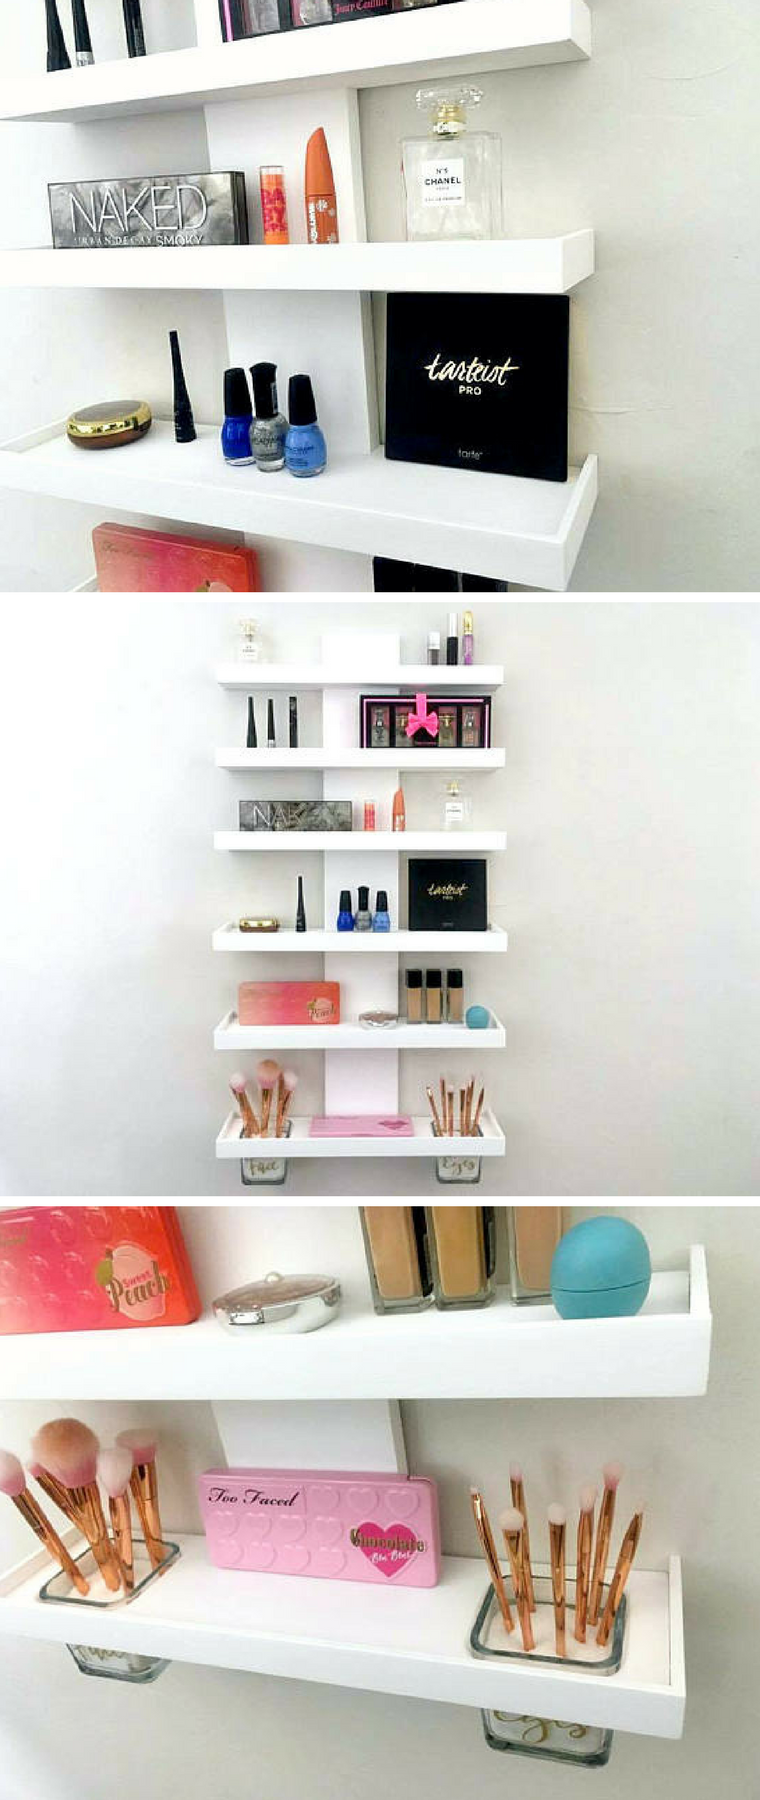 Organize Your Makeup And Beauty Essentials With This Sleek Stylish